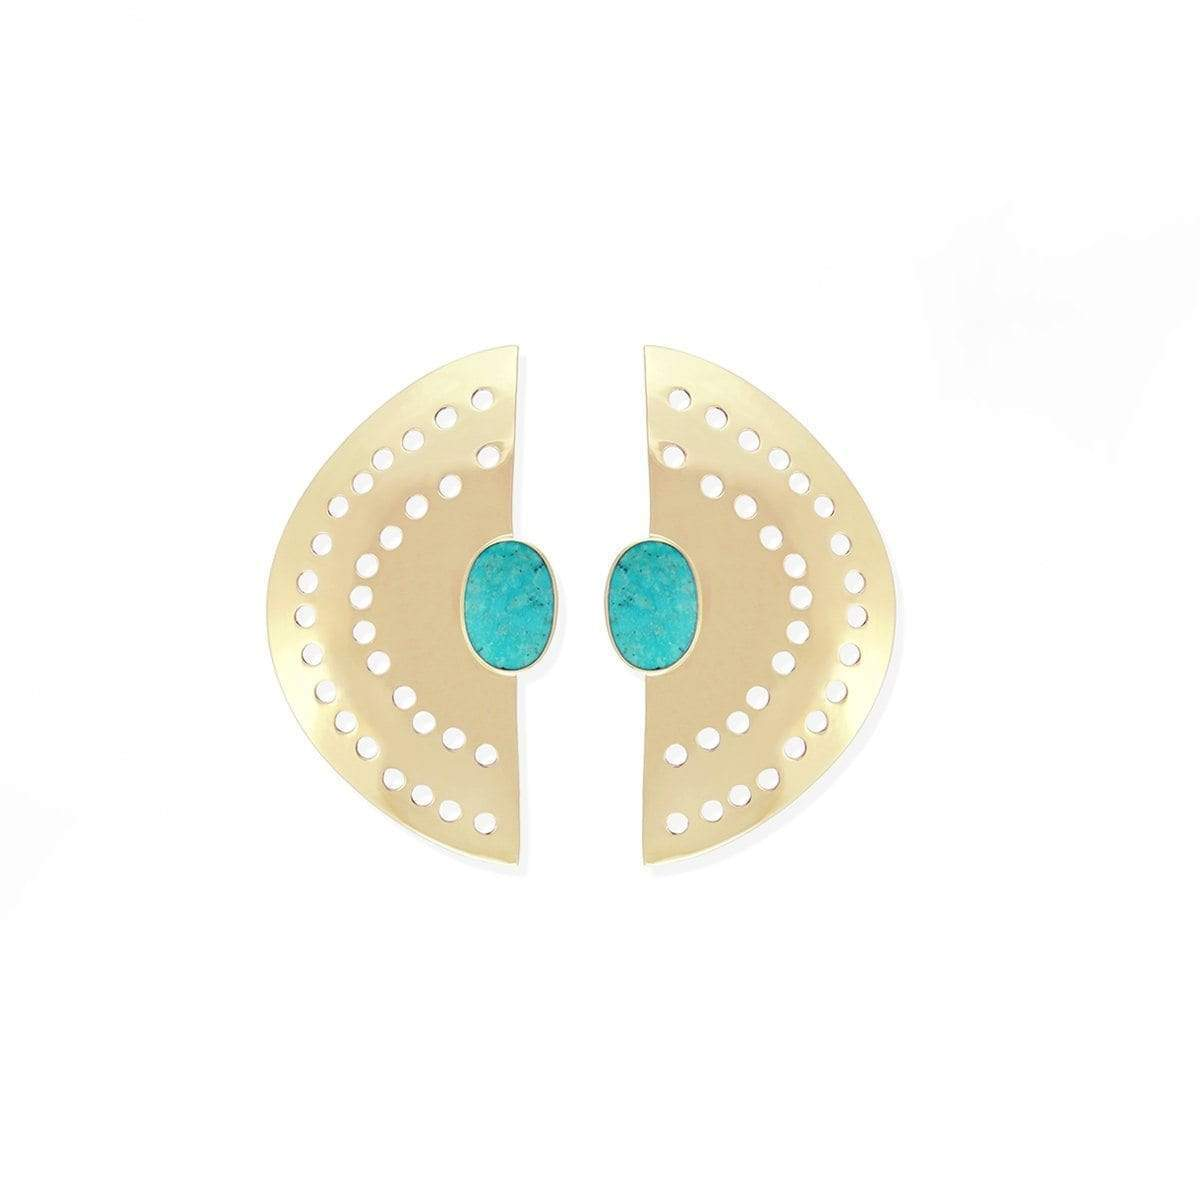 Vintage Half Moon Earrings - Turquoise